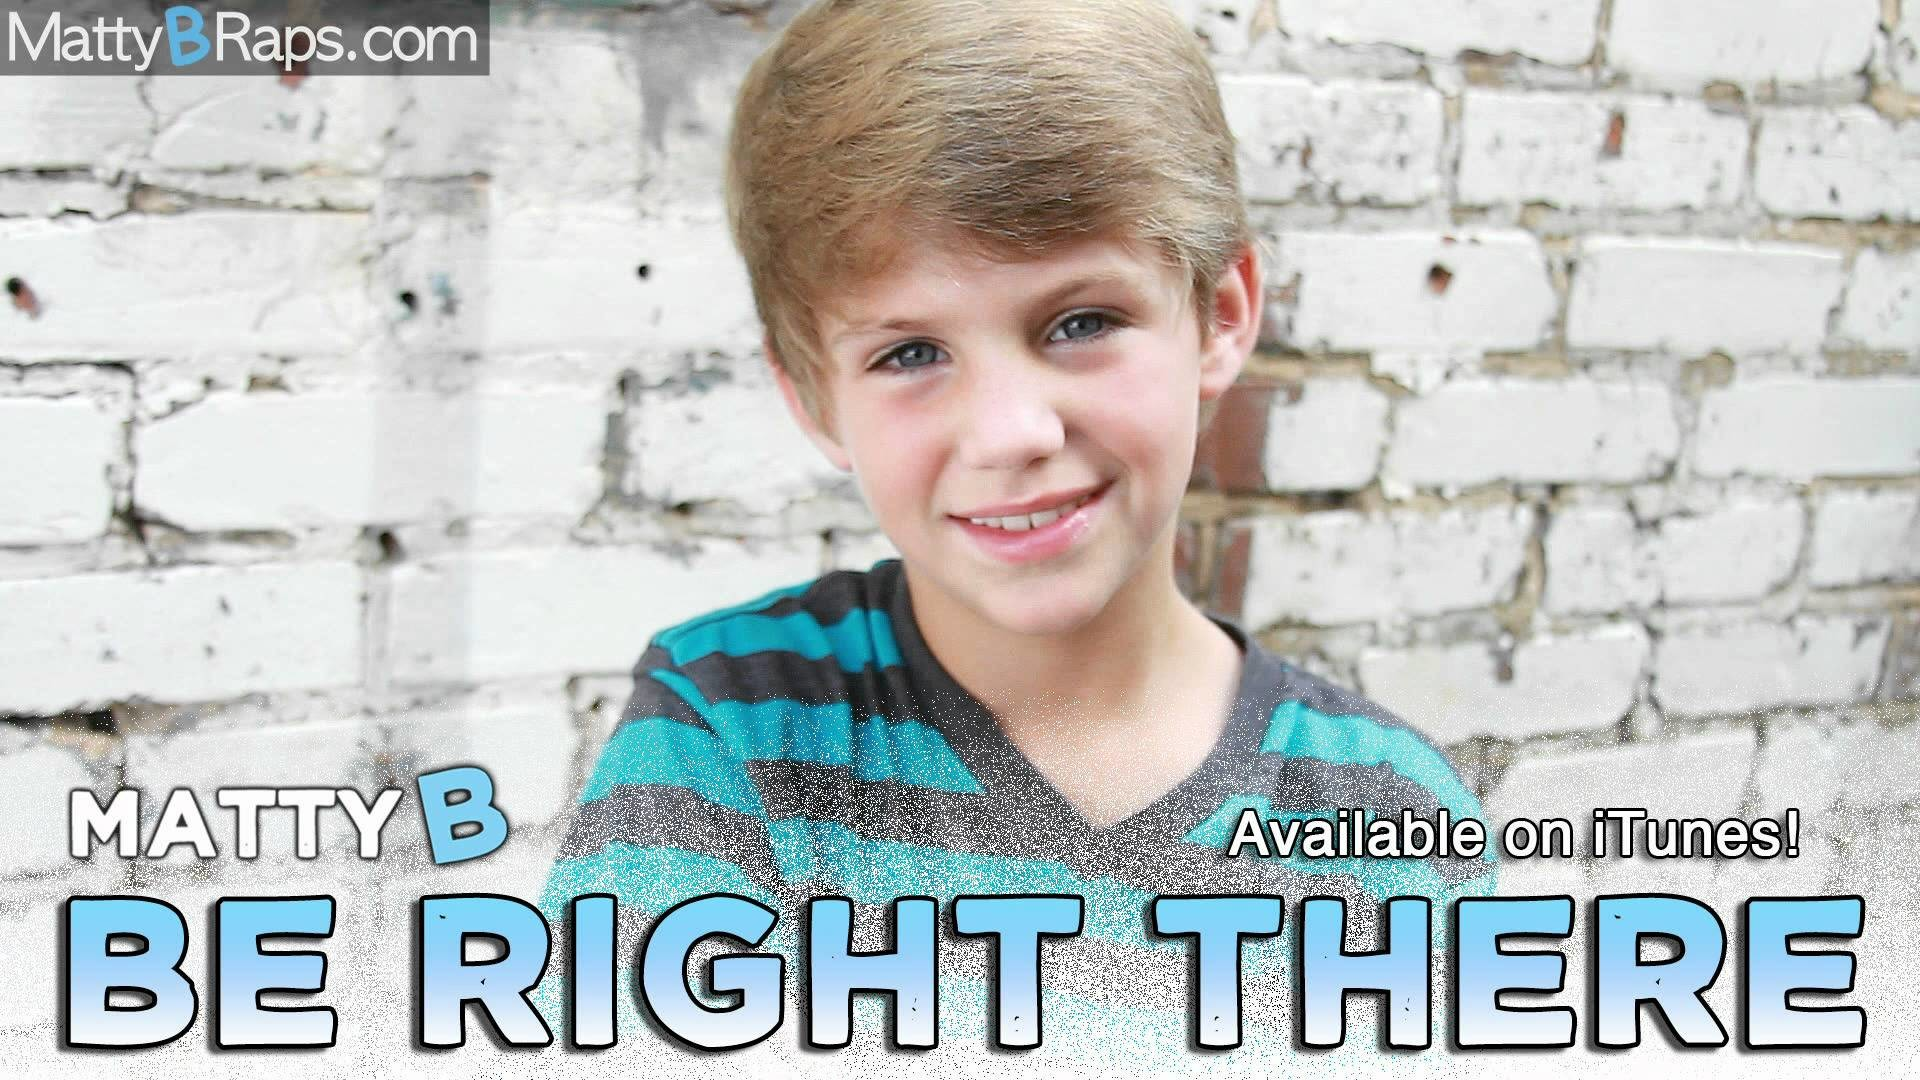 1920x1080 Mattyb Wallpaper HD Wallpapermonkey